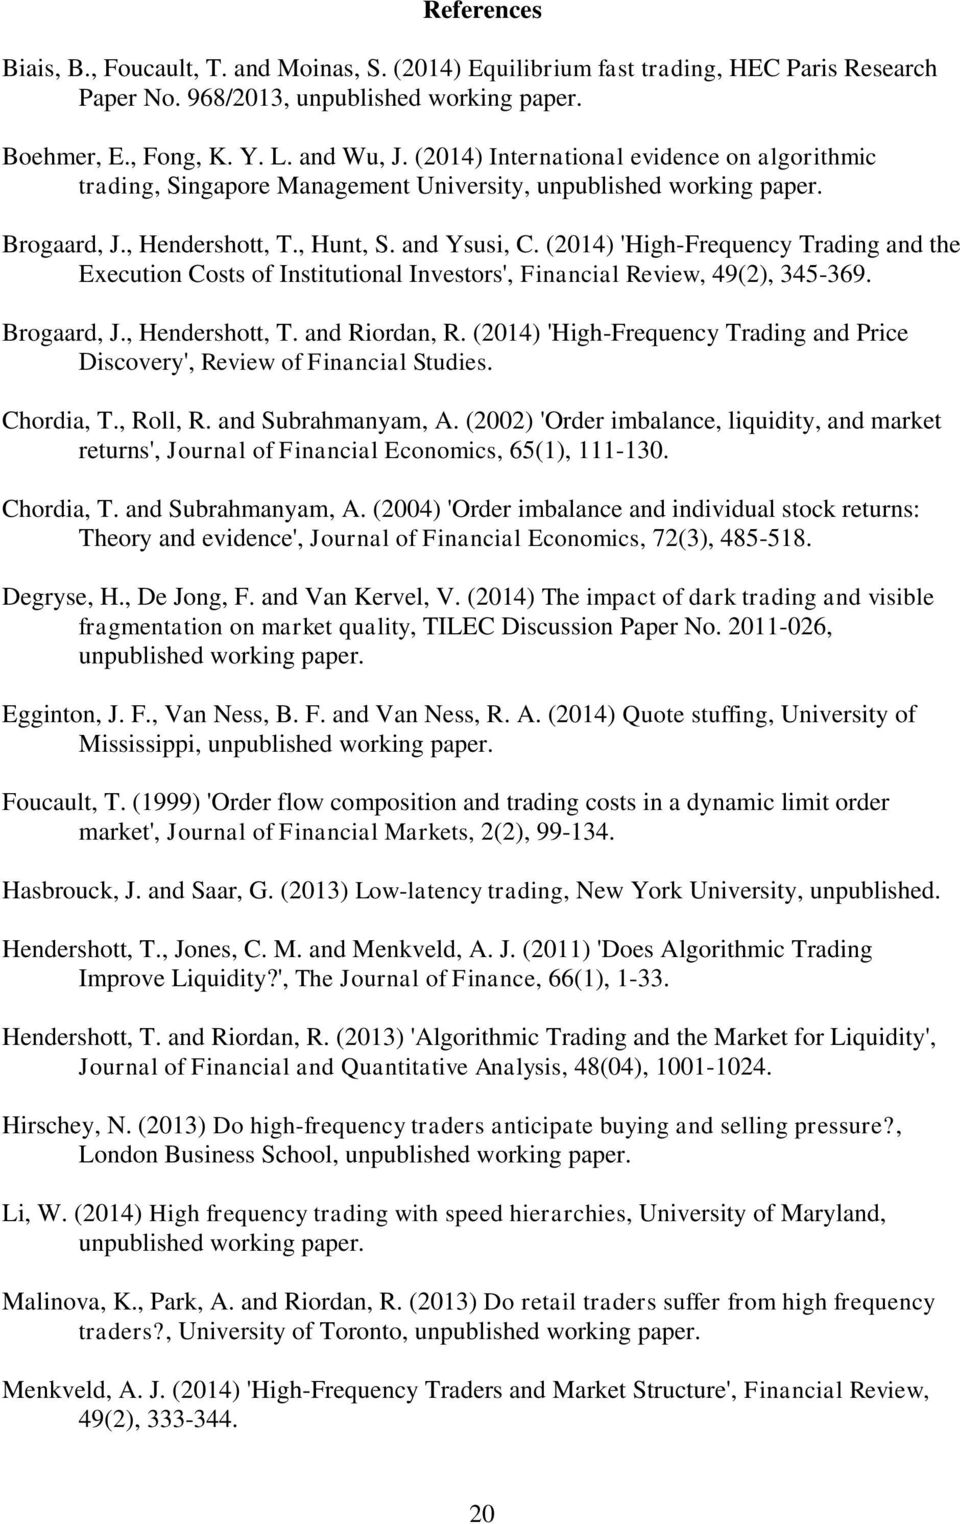 (2014) 'High-Frequency Trading and the Execution Costs of Institutional Investors', Financial Review, 49(2), 345-369. Brogaard, J., Hendershott, T. and Riordan, R.